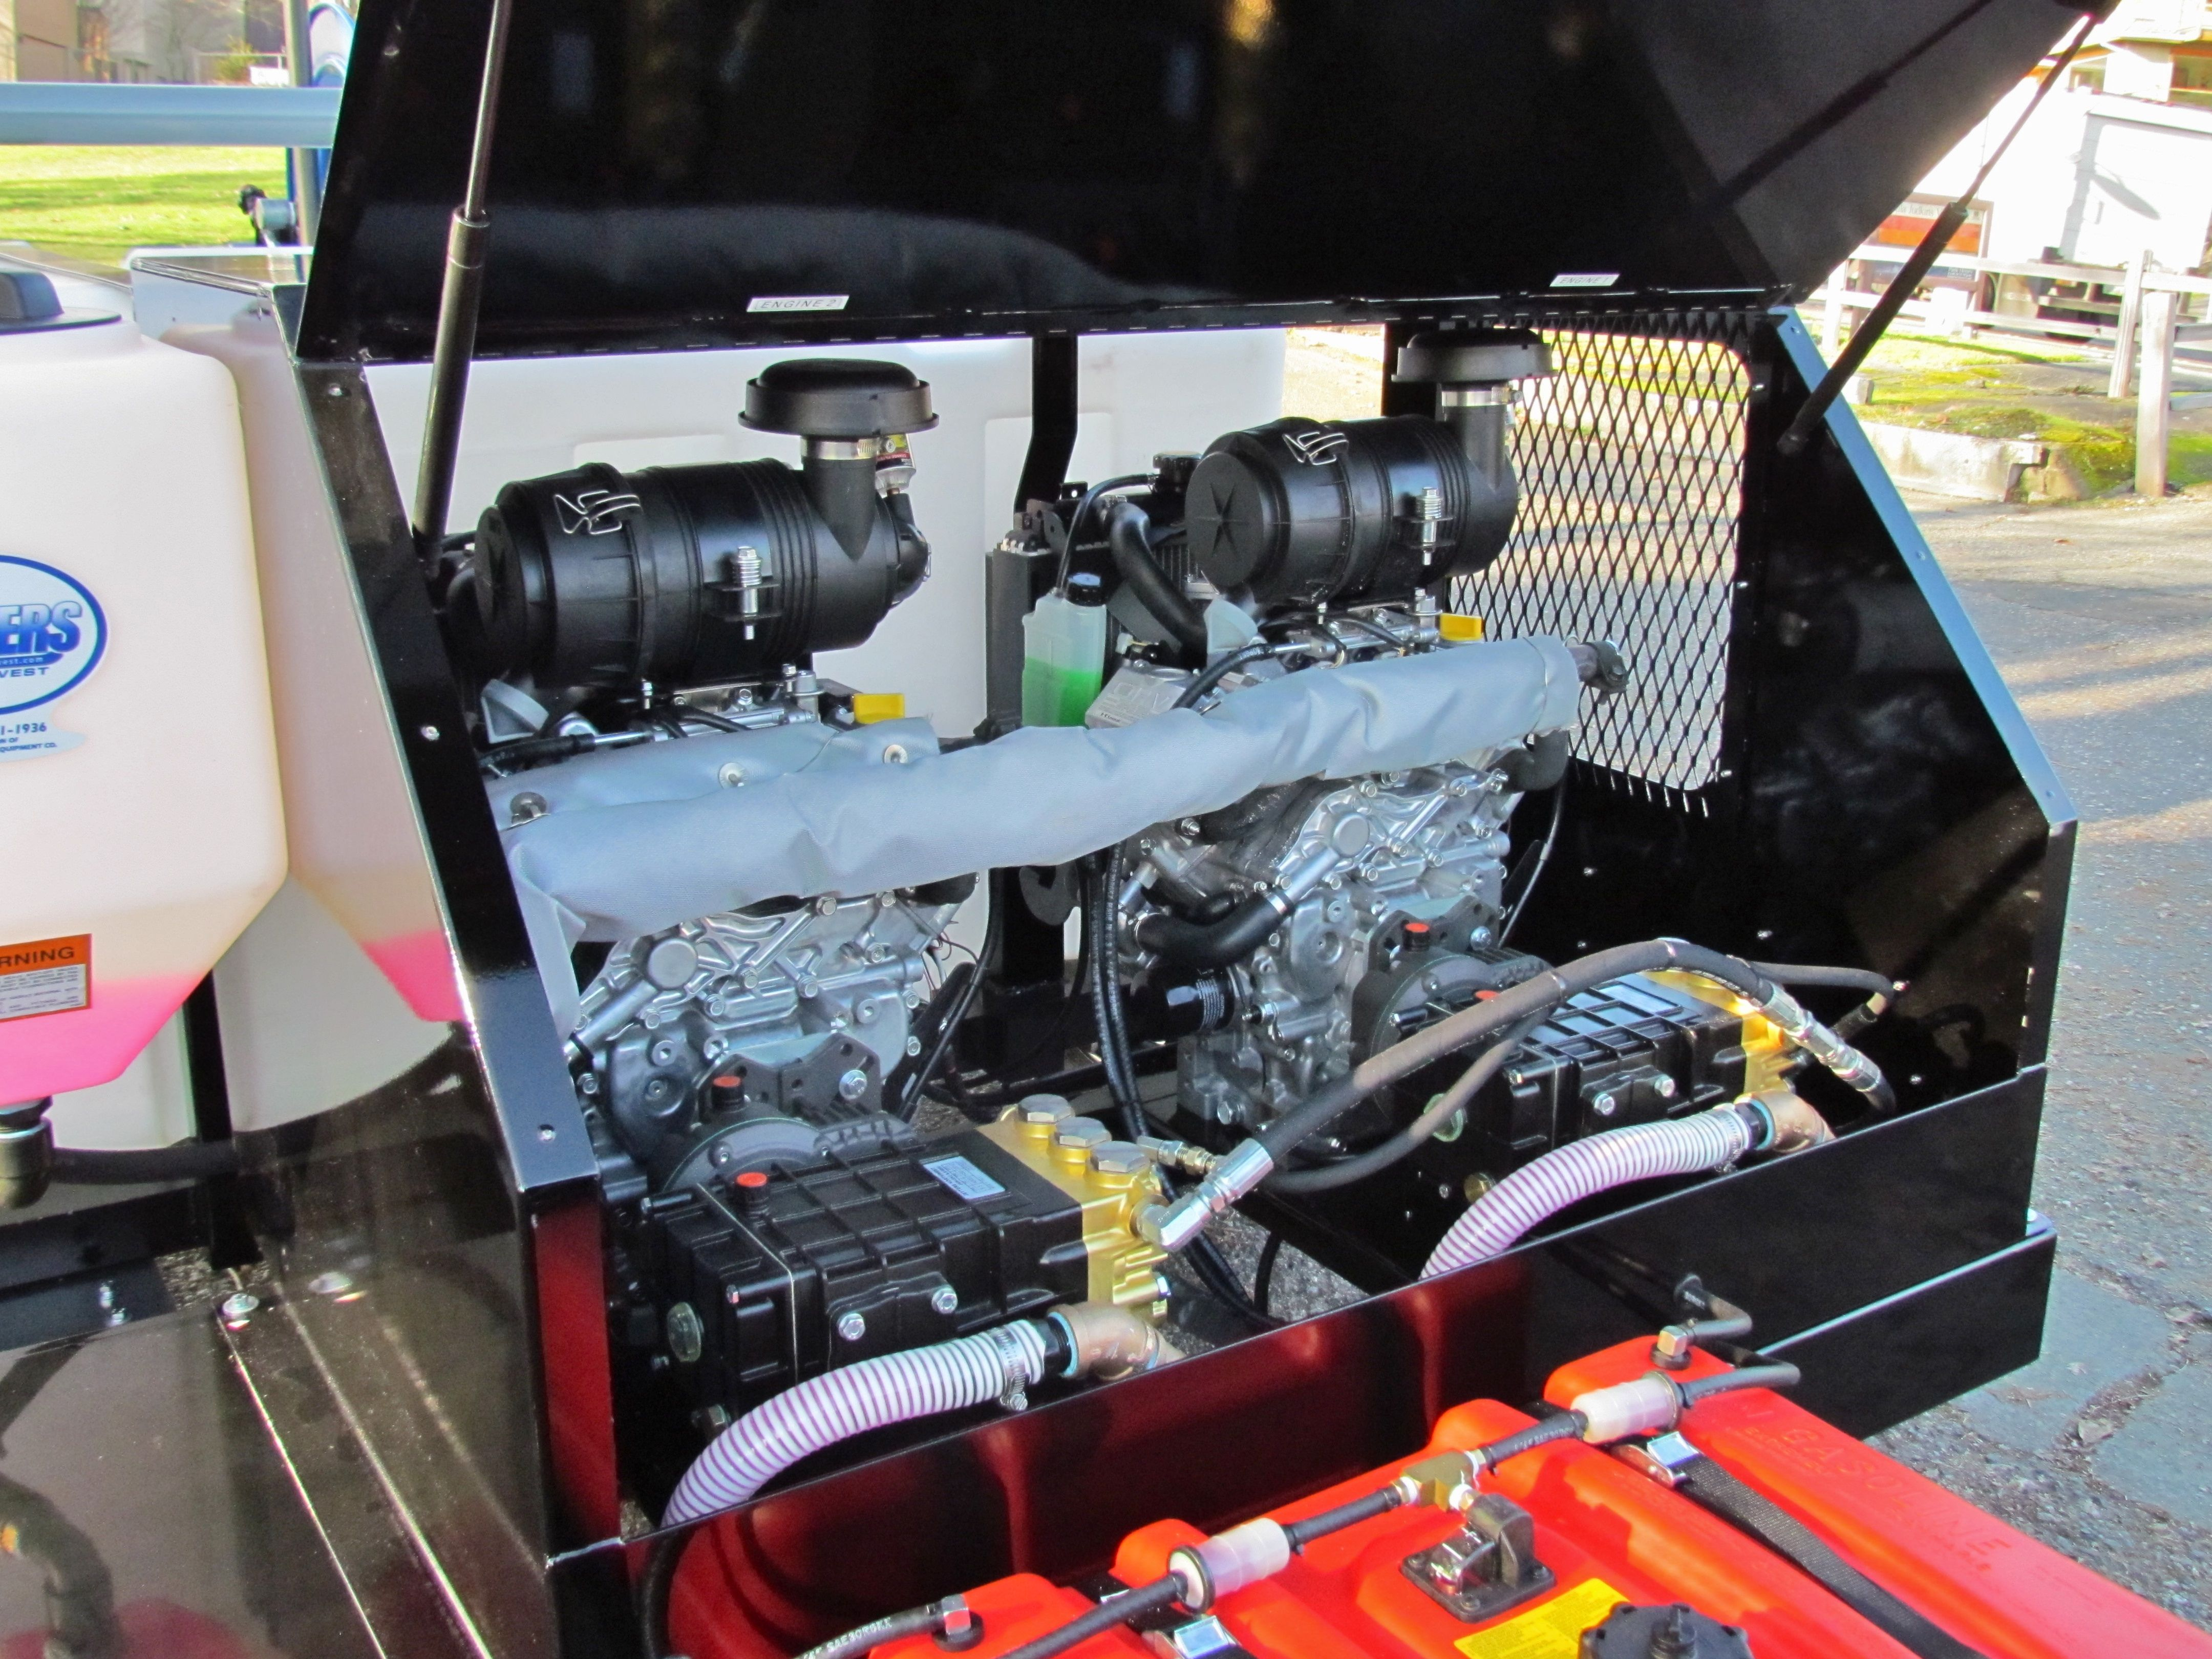 Eagle series trailer jetter engine and pump compartment